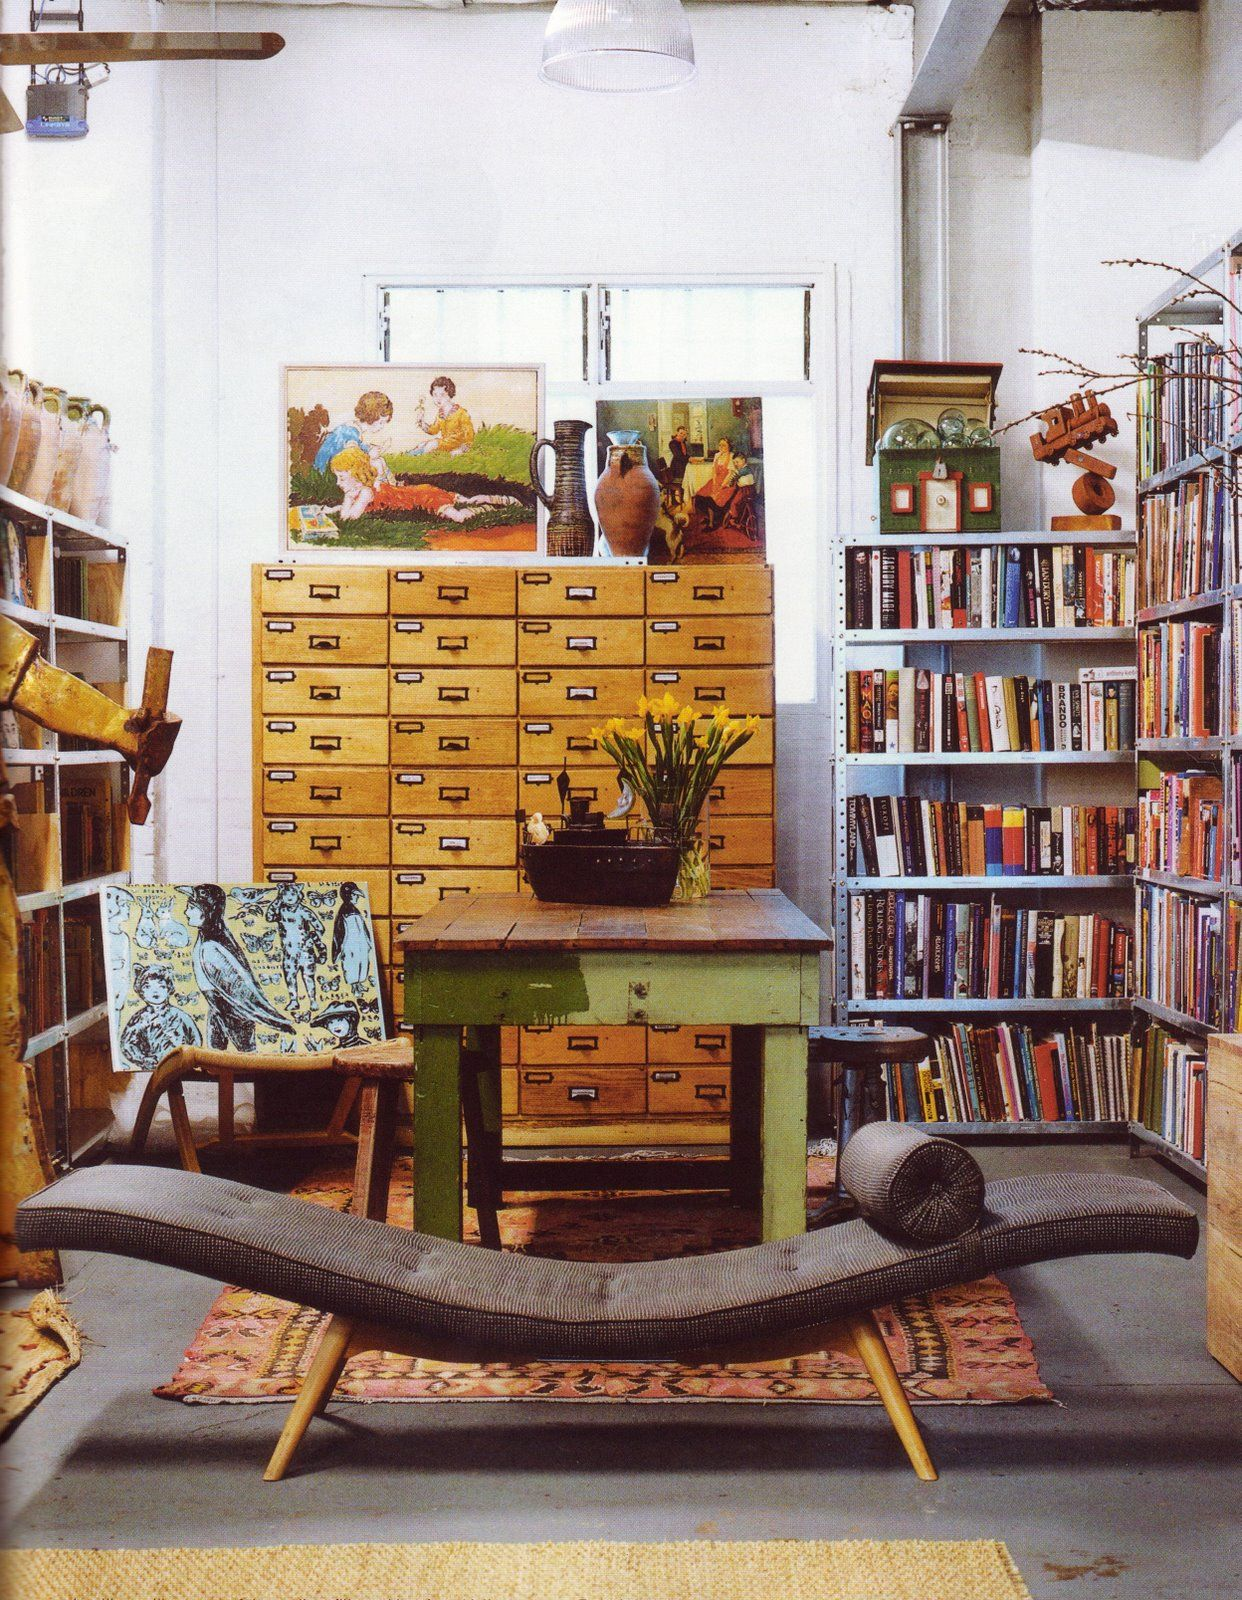 See a card catalog back there...